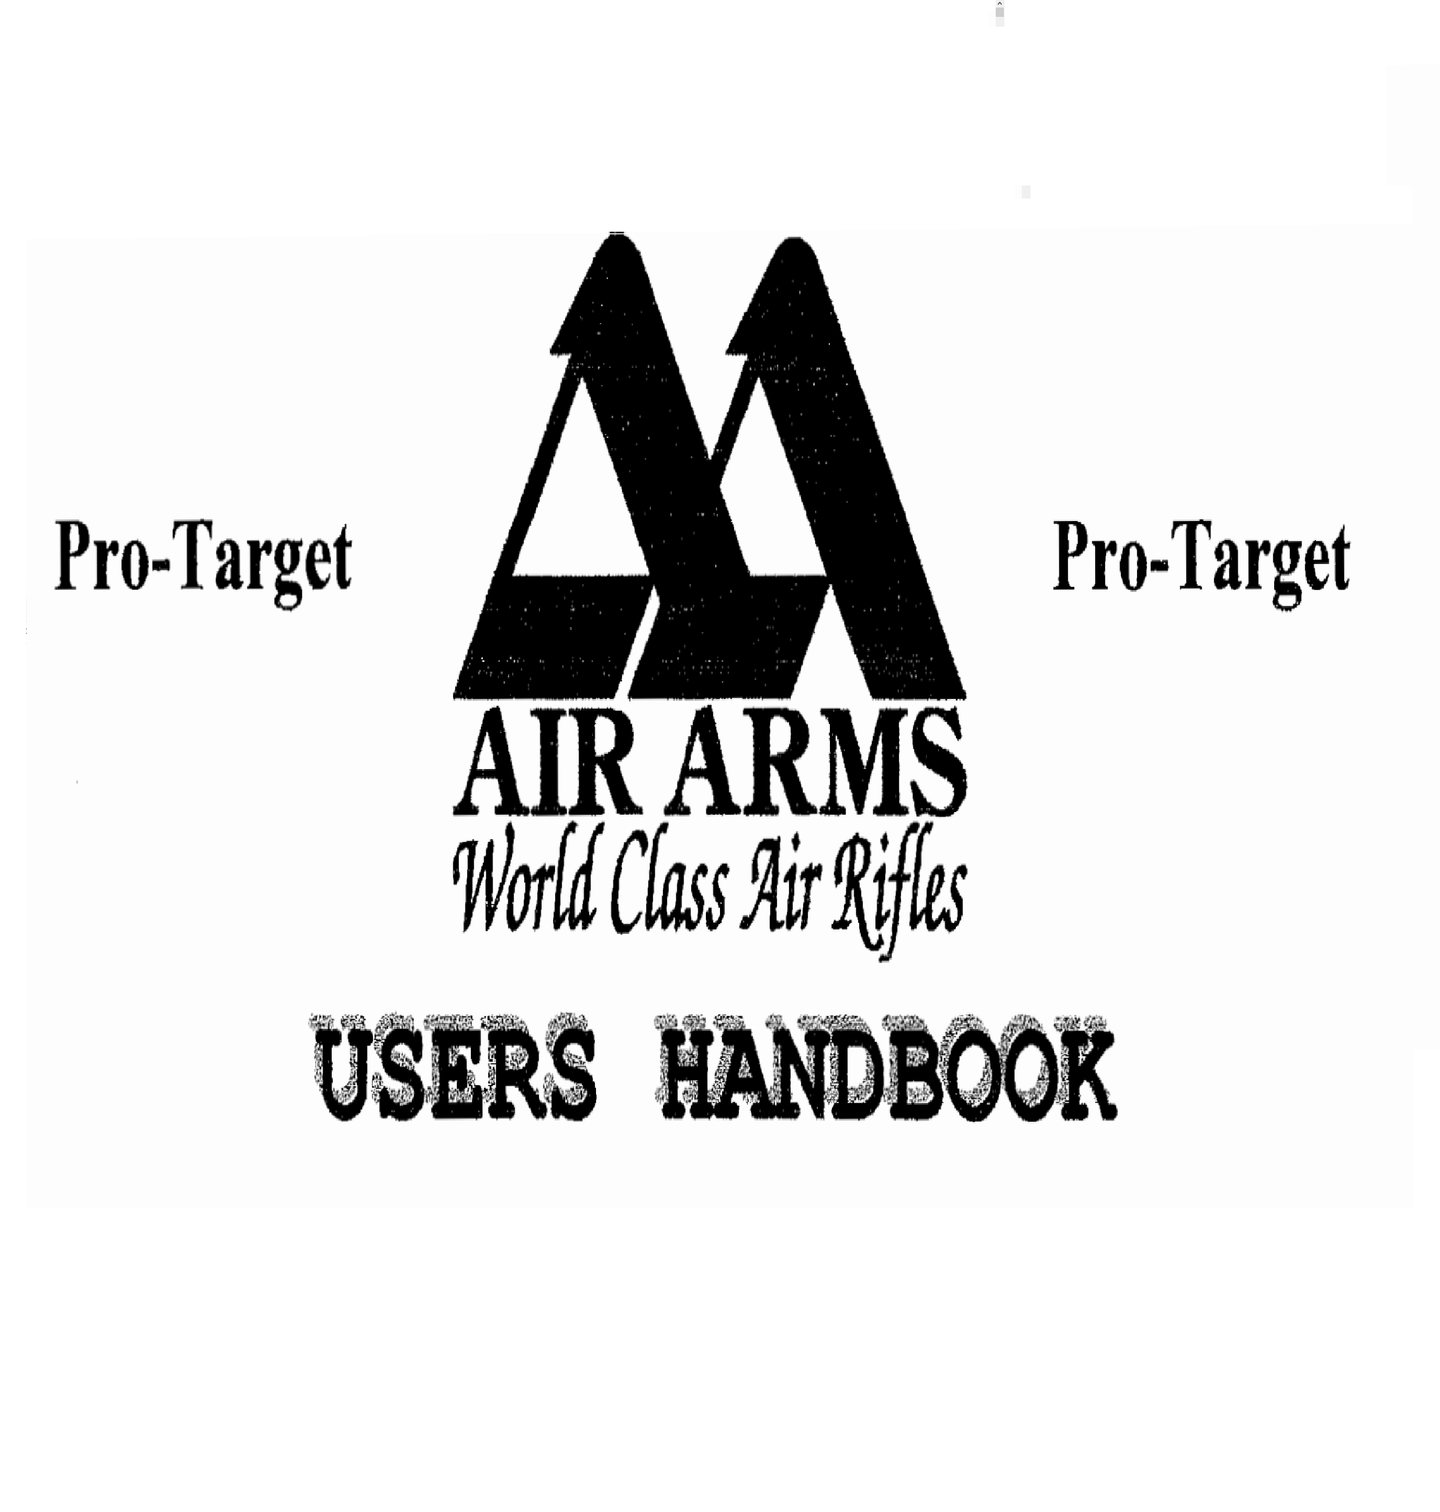 Air Arms Pro Target Users Handbook Airgun Air  Rifle Gun Owners Manual Instant Download #AirArms